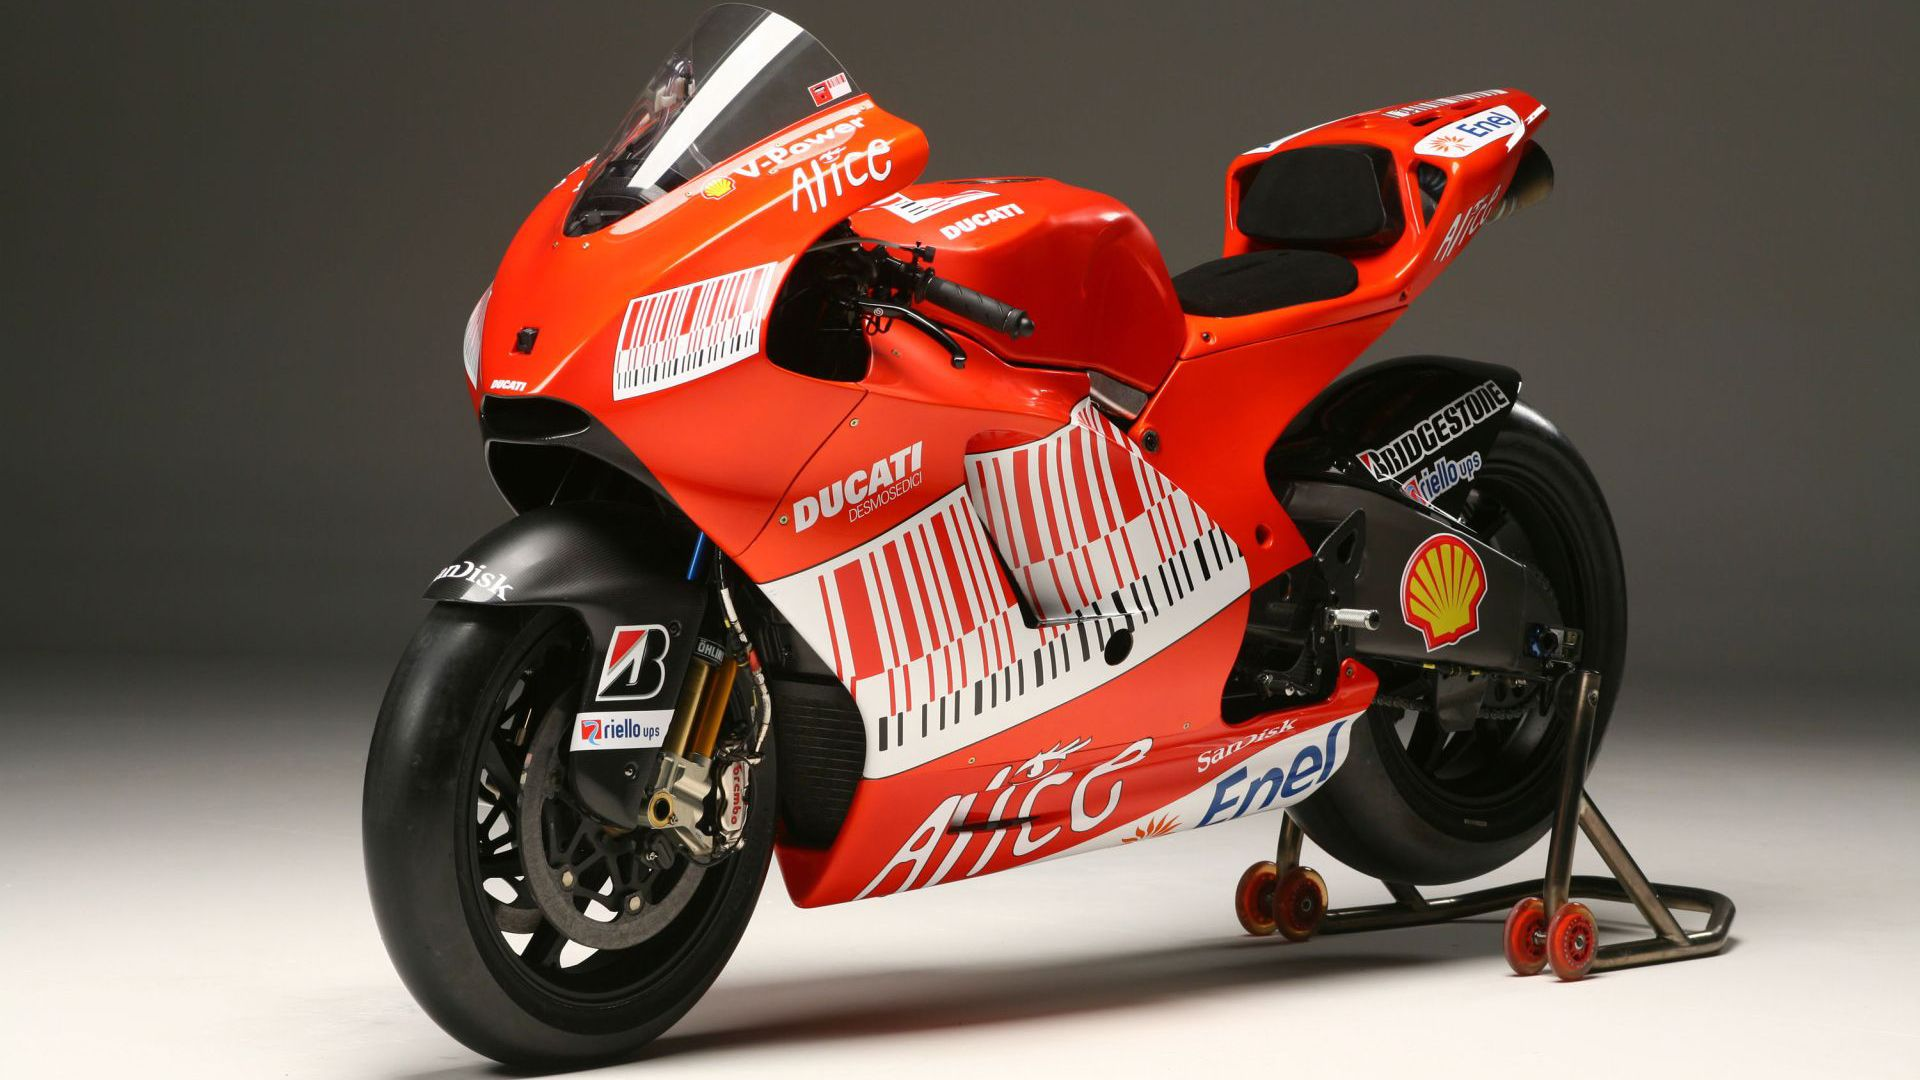 ducati sports bike -hd | hangout | pinterest | ducati, motorbikes